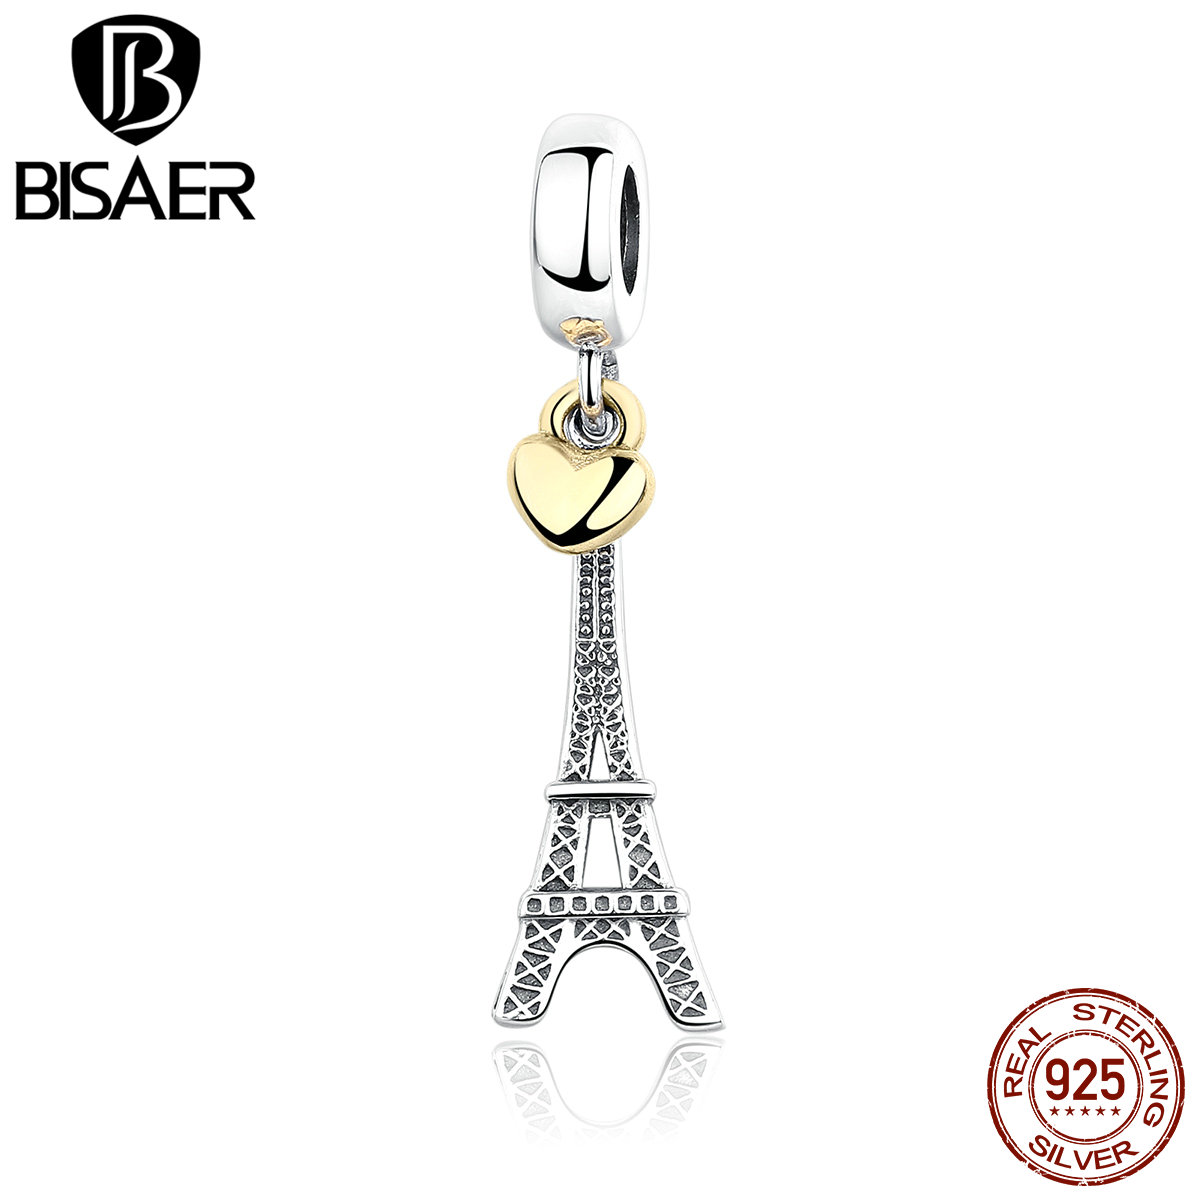 EIFFEL TOWER 925 Sterling Silver EIFFEL TOWER PENDANT CHARM with Heart Charms Fit BISAER Bracelets Beads for Jewelry Making eiffel tower